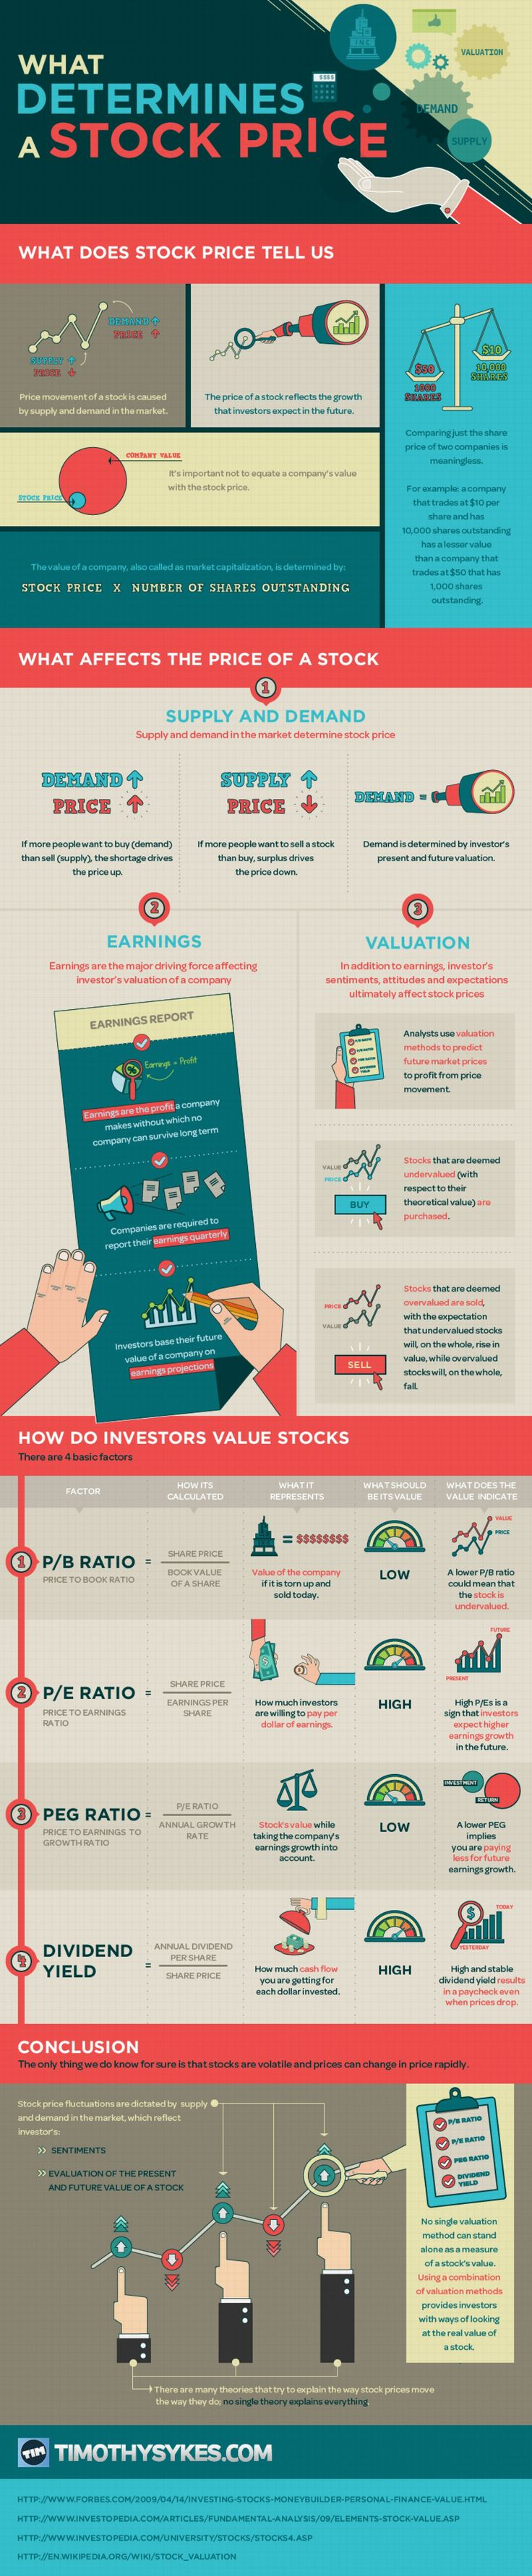 What Determines a Stock Price? Infographic